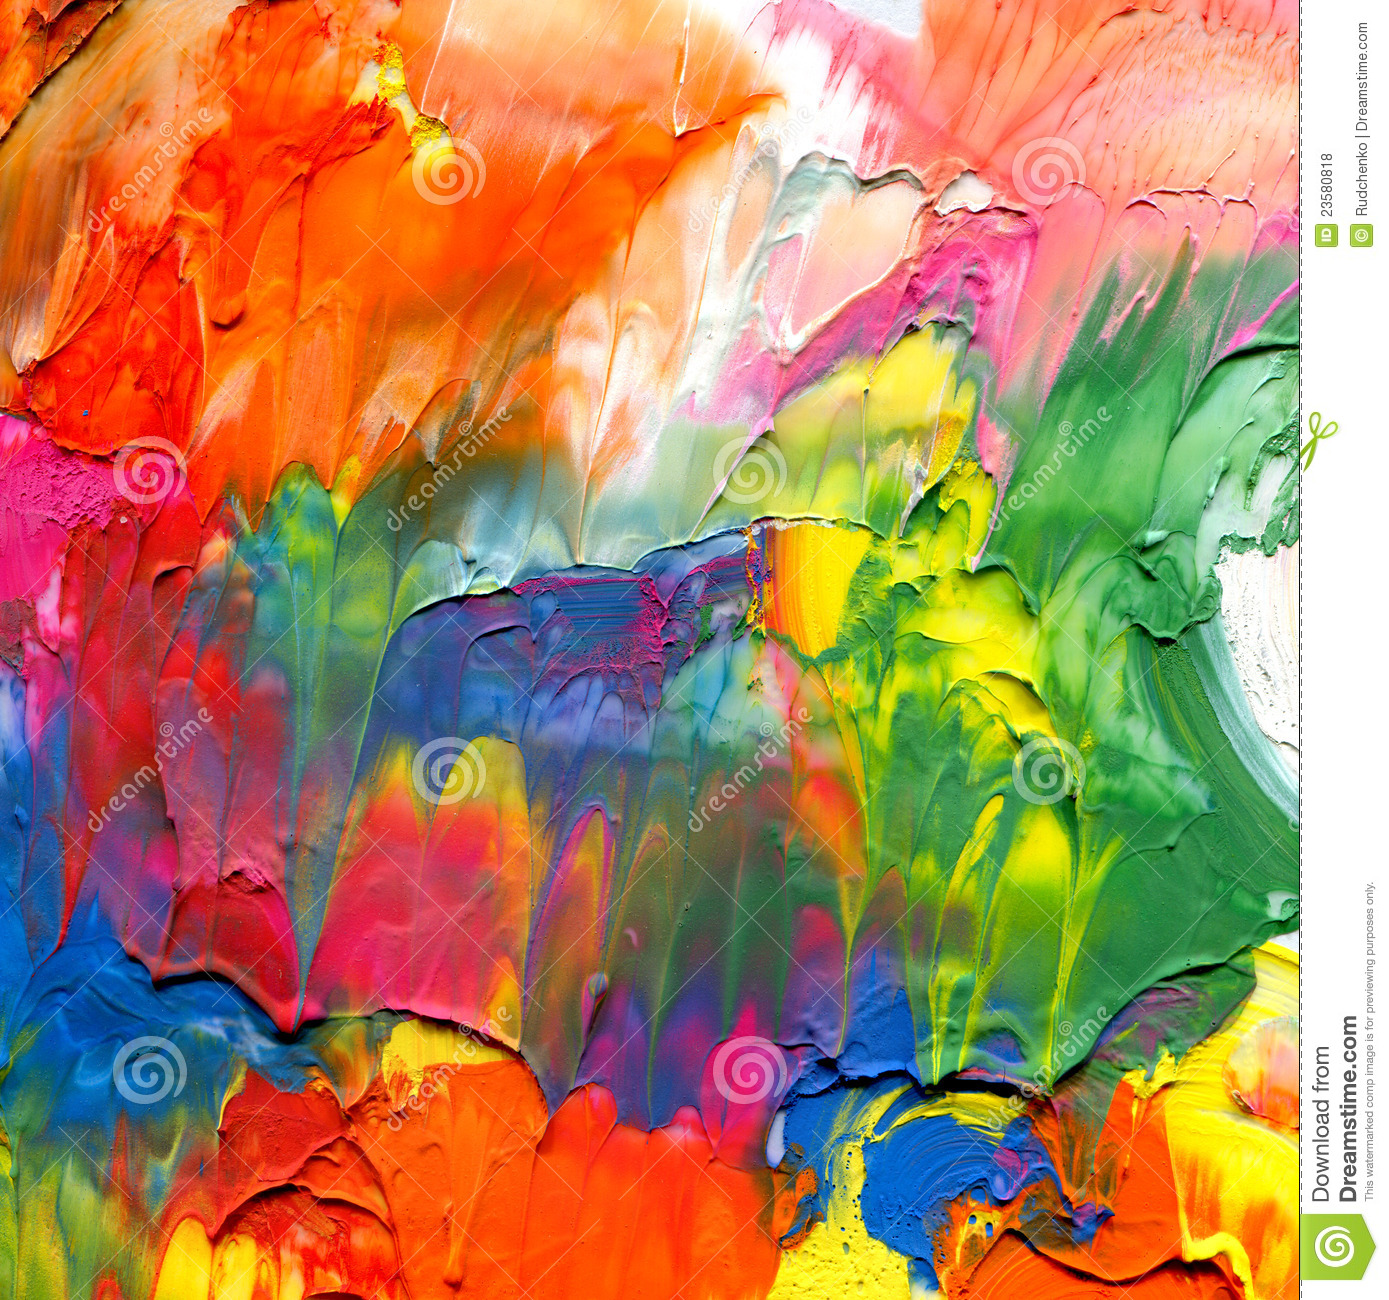 Abstract Acrylic Painted Background Royalty Free Stock Photos Image 23580818